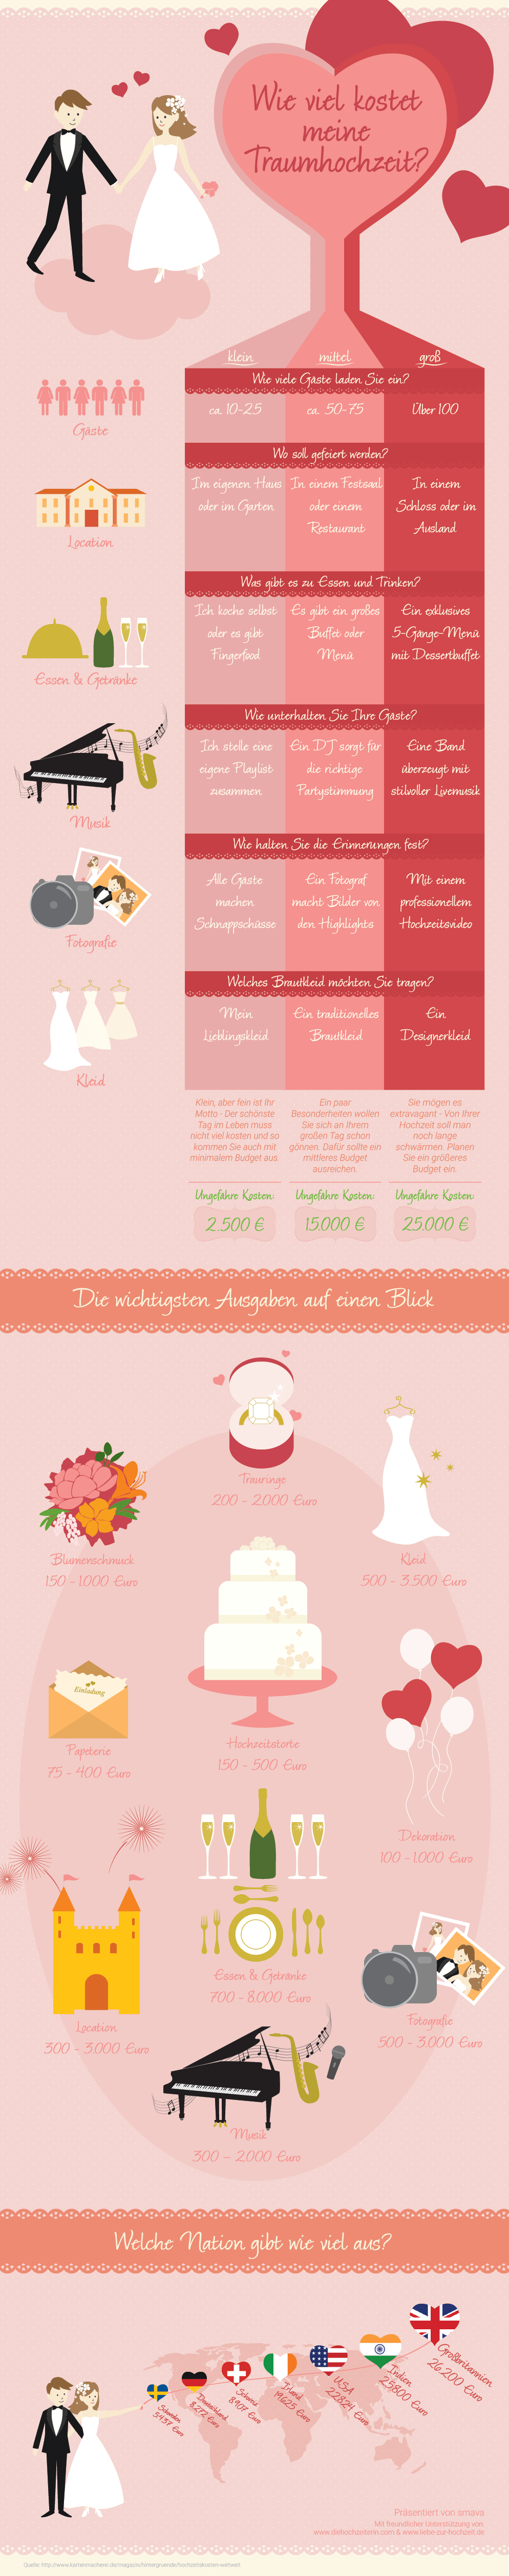 How much does a wedding cost Overview of expenses - How much does a wedding cost? Overview of expenses